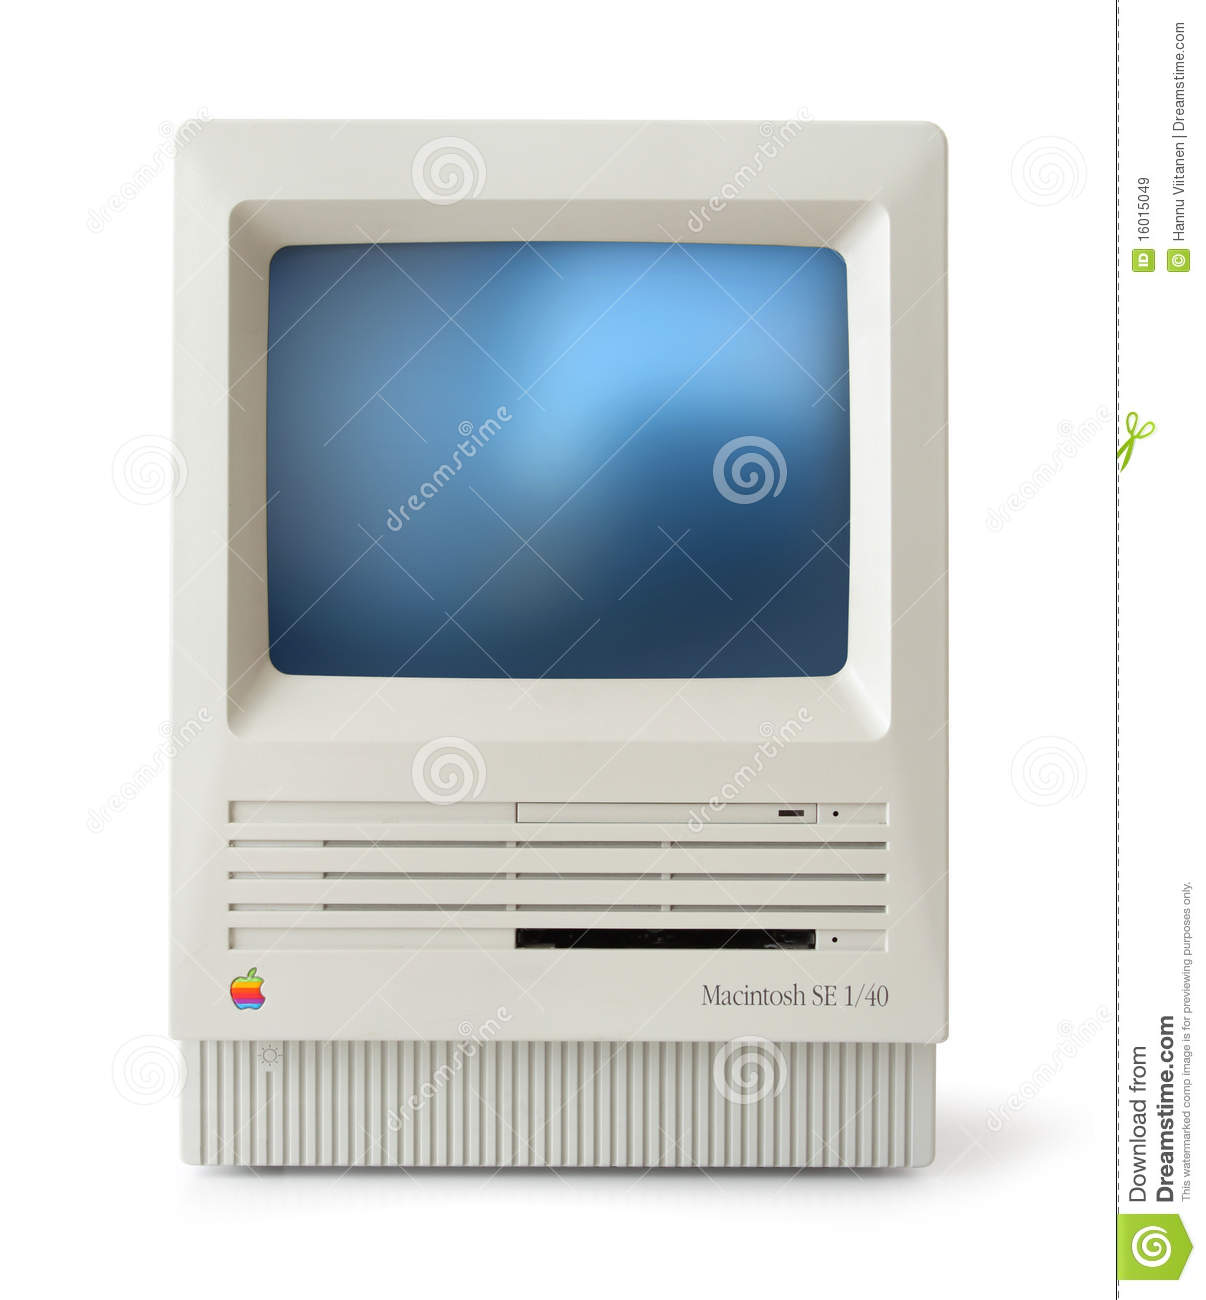 Original classic Apple Macintosh SE computer front, isolated on white.